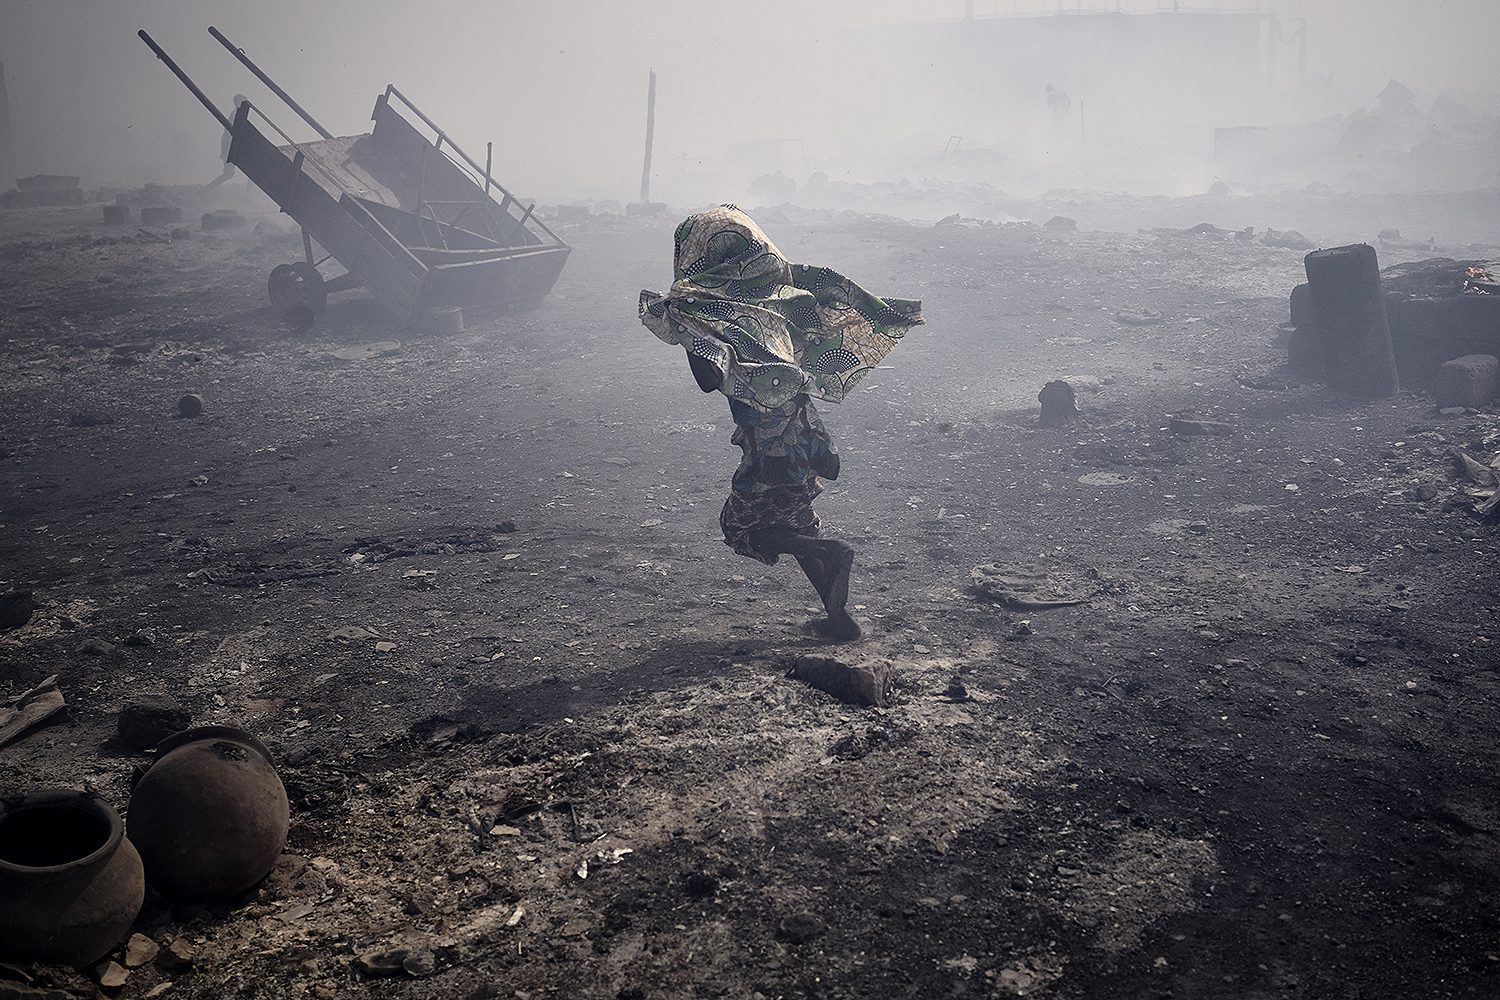 A girl runs between burnt huts in Faladie, an informal camp for displaced people, in Bamako, Mali, on April 28. A fire destroyed much of the camp, where more than 1,000 people who fled the violence in central Mali had found refuge. MICHELE CATTANI/AFP via Getty Images